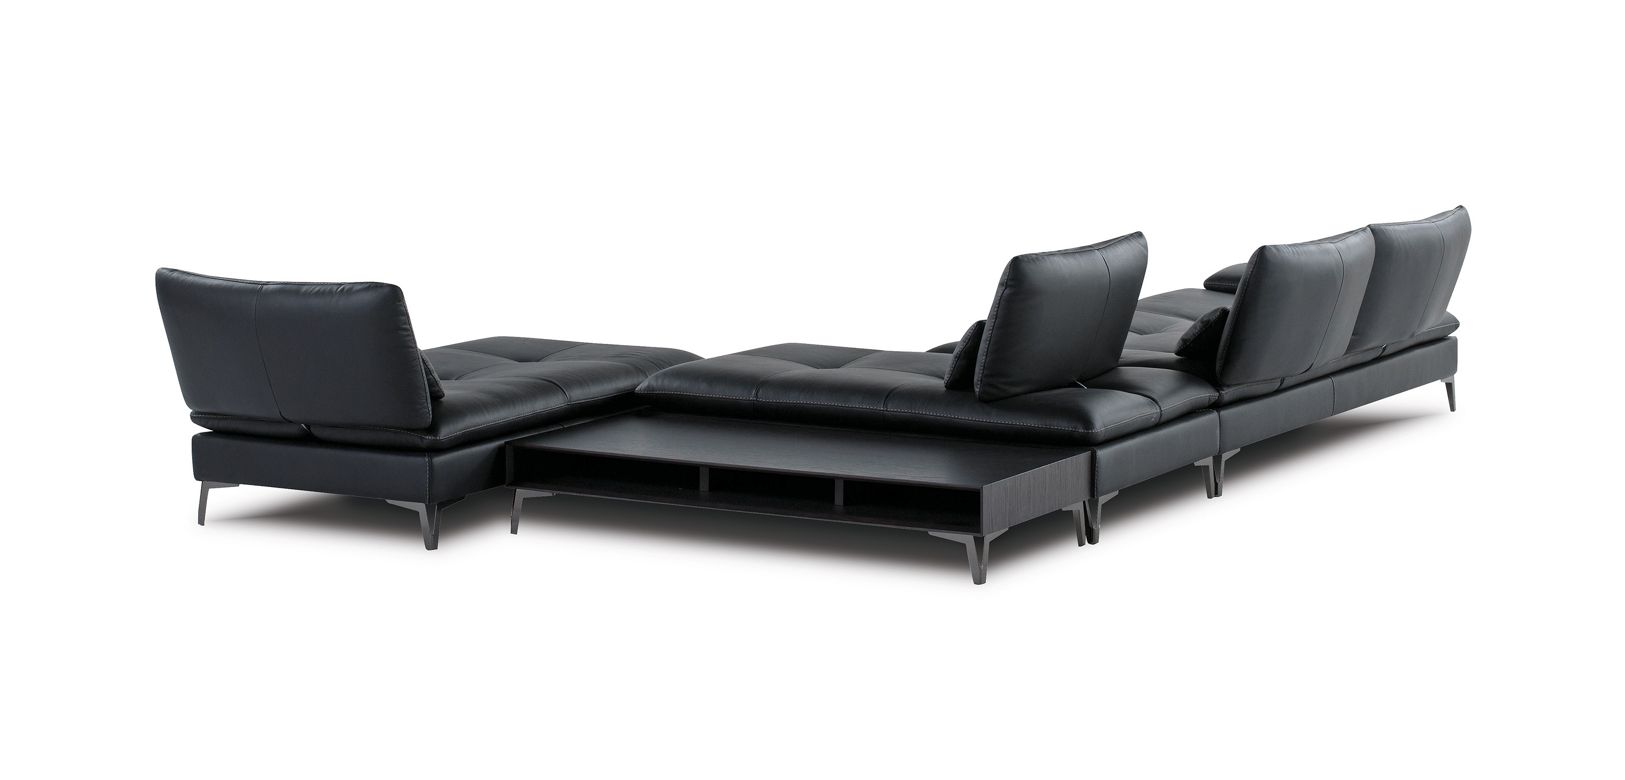 composition d 39 angle scenario roche bobois. Black Bedroom Furniture Sets. Home Design Ideas